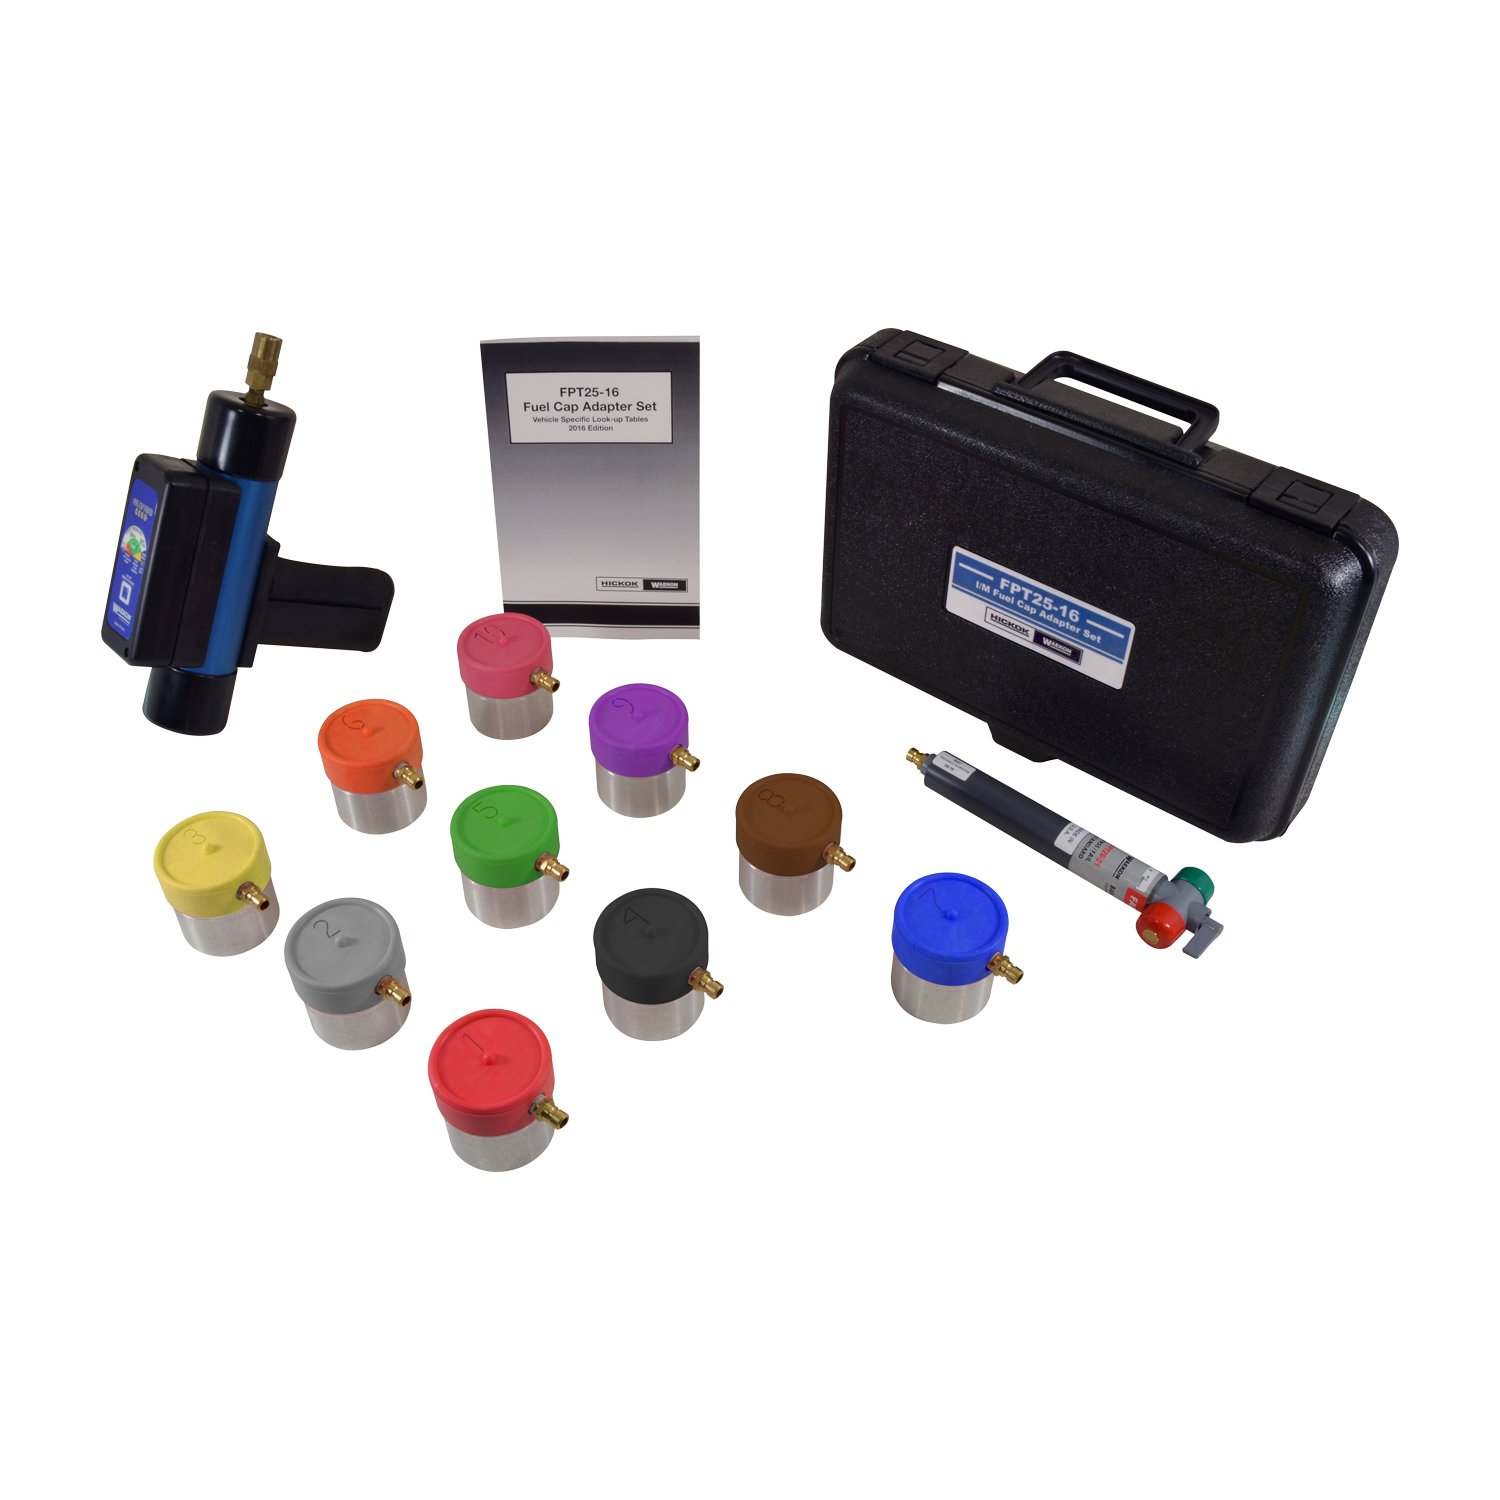 Waekon FPT2600EX1 Hand Held Fuel Cap Tester with Adapters (I/M), 1 Pack